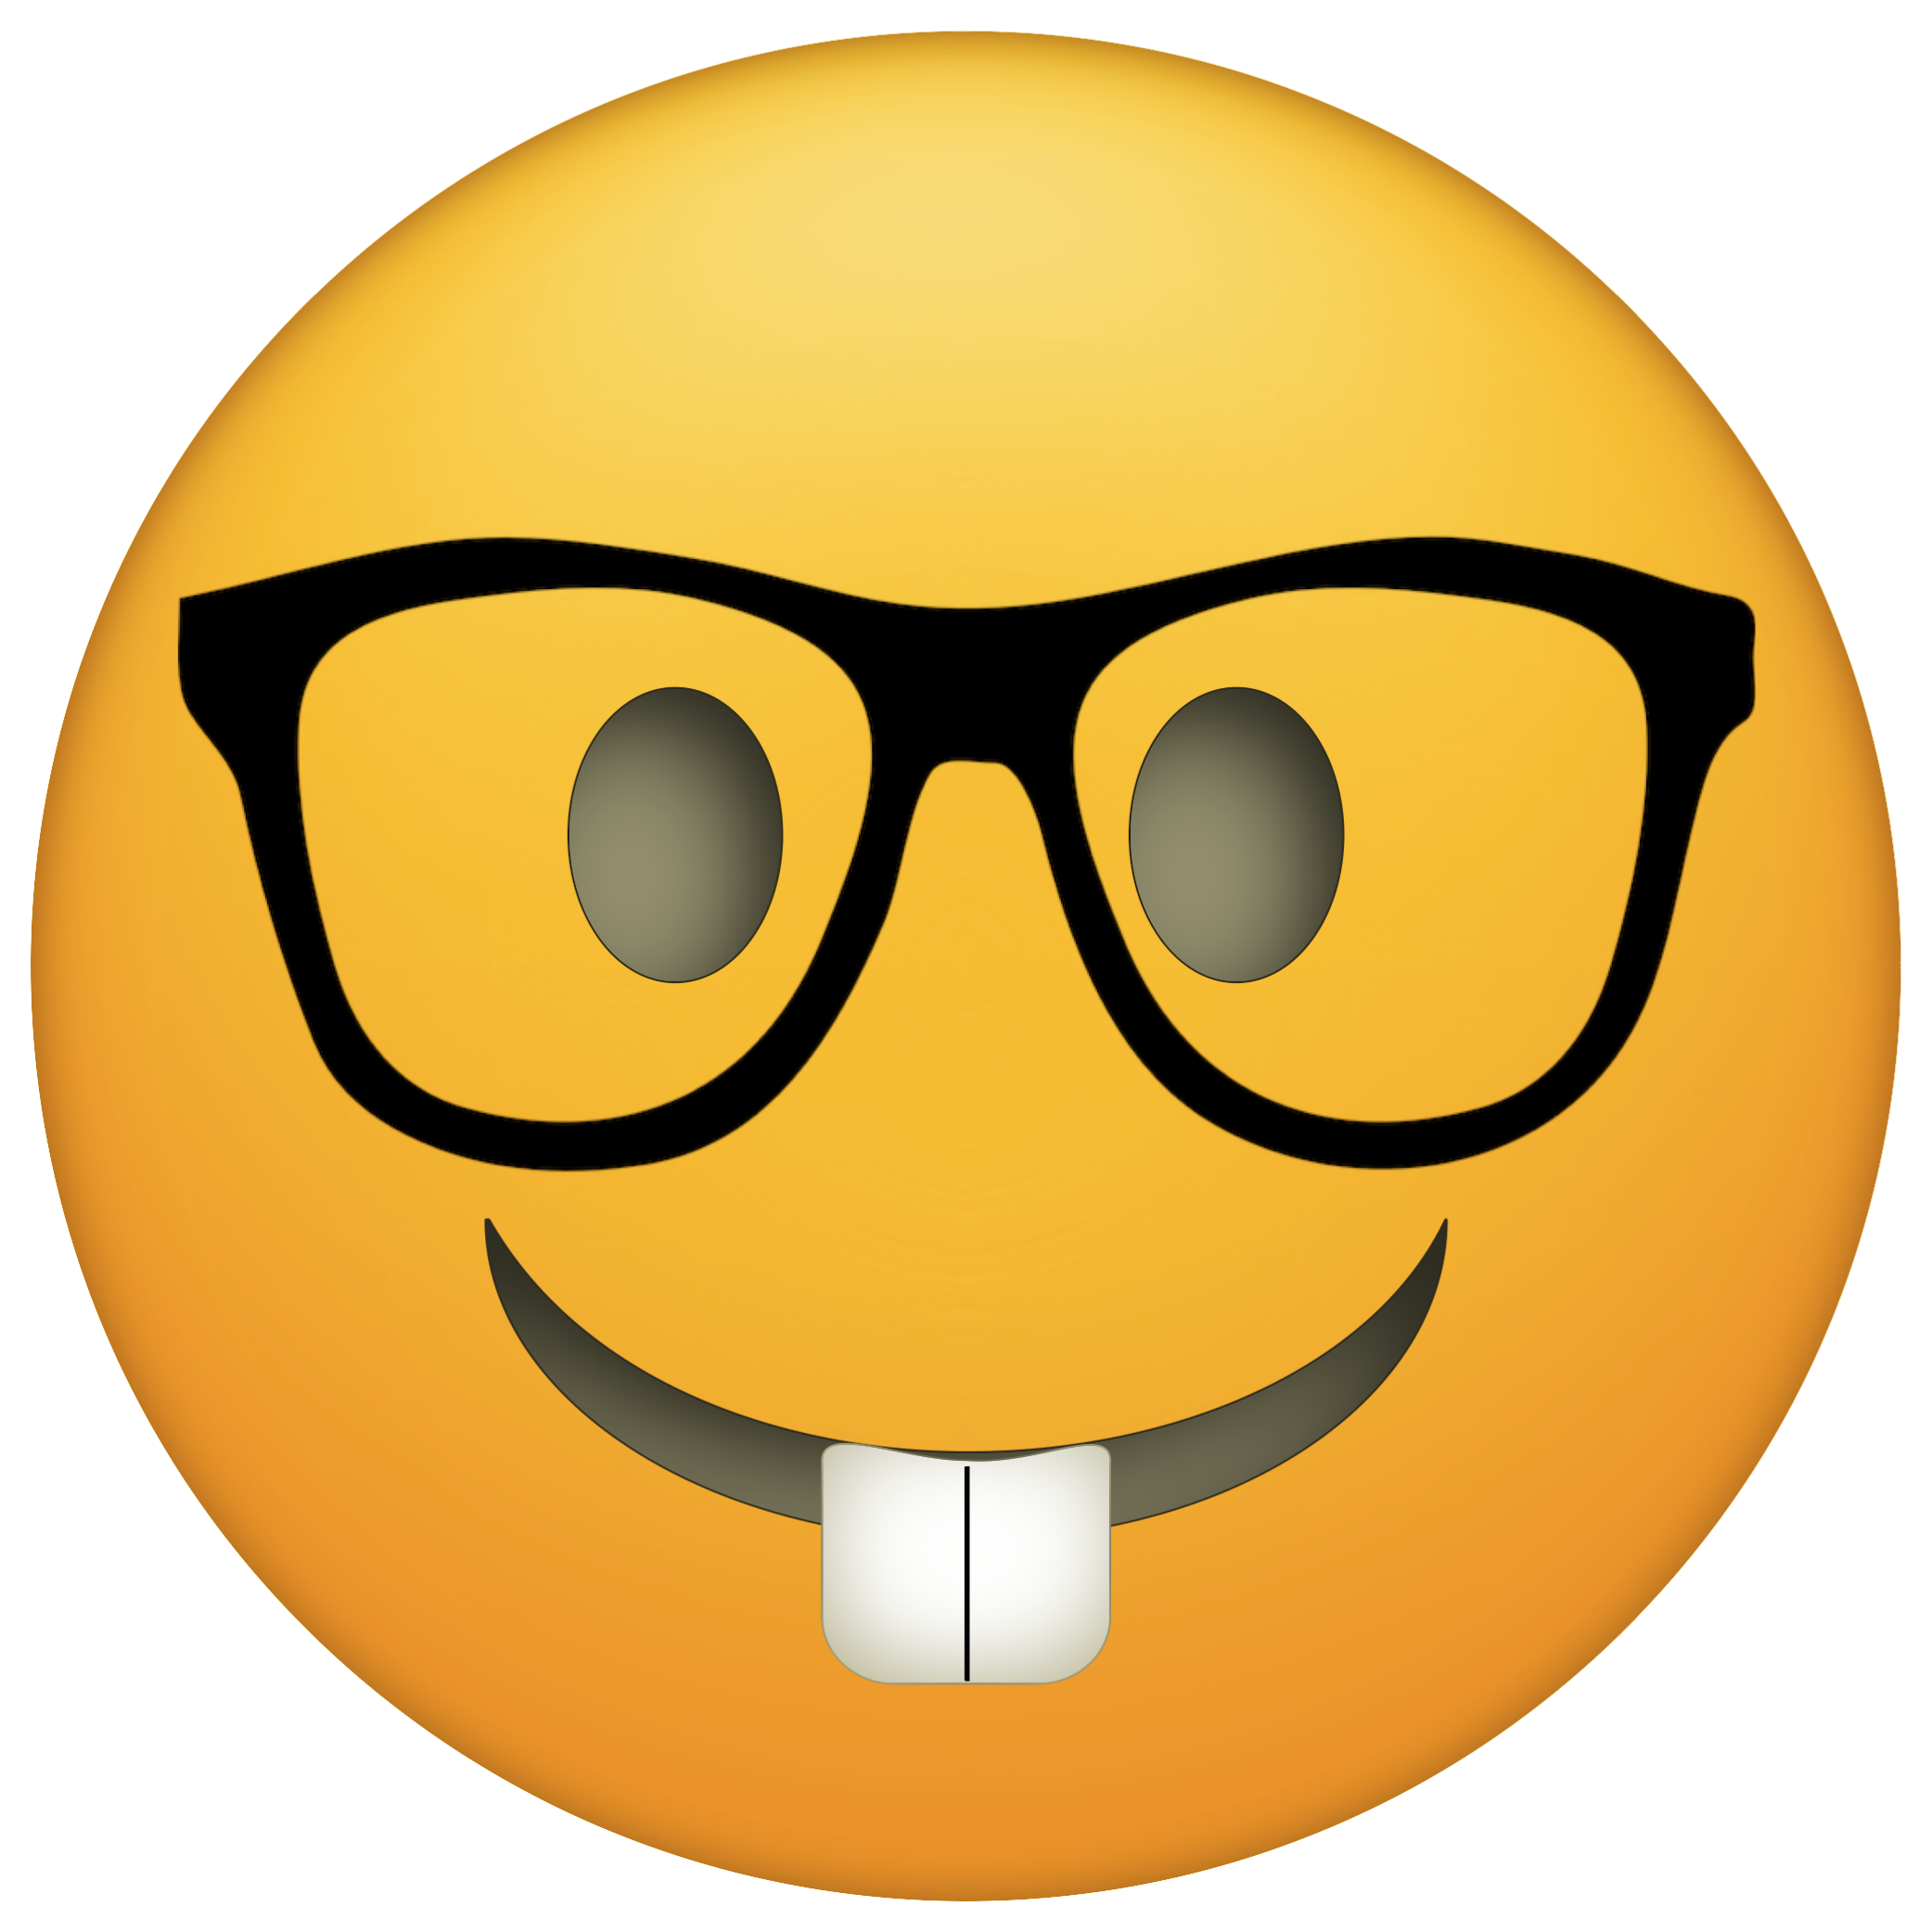 Nerd emoticon png. Www papertraildesign com wp